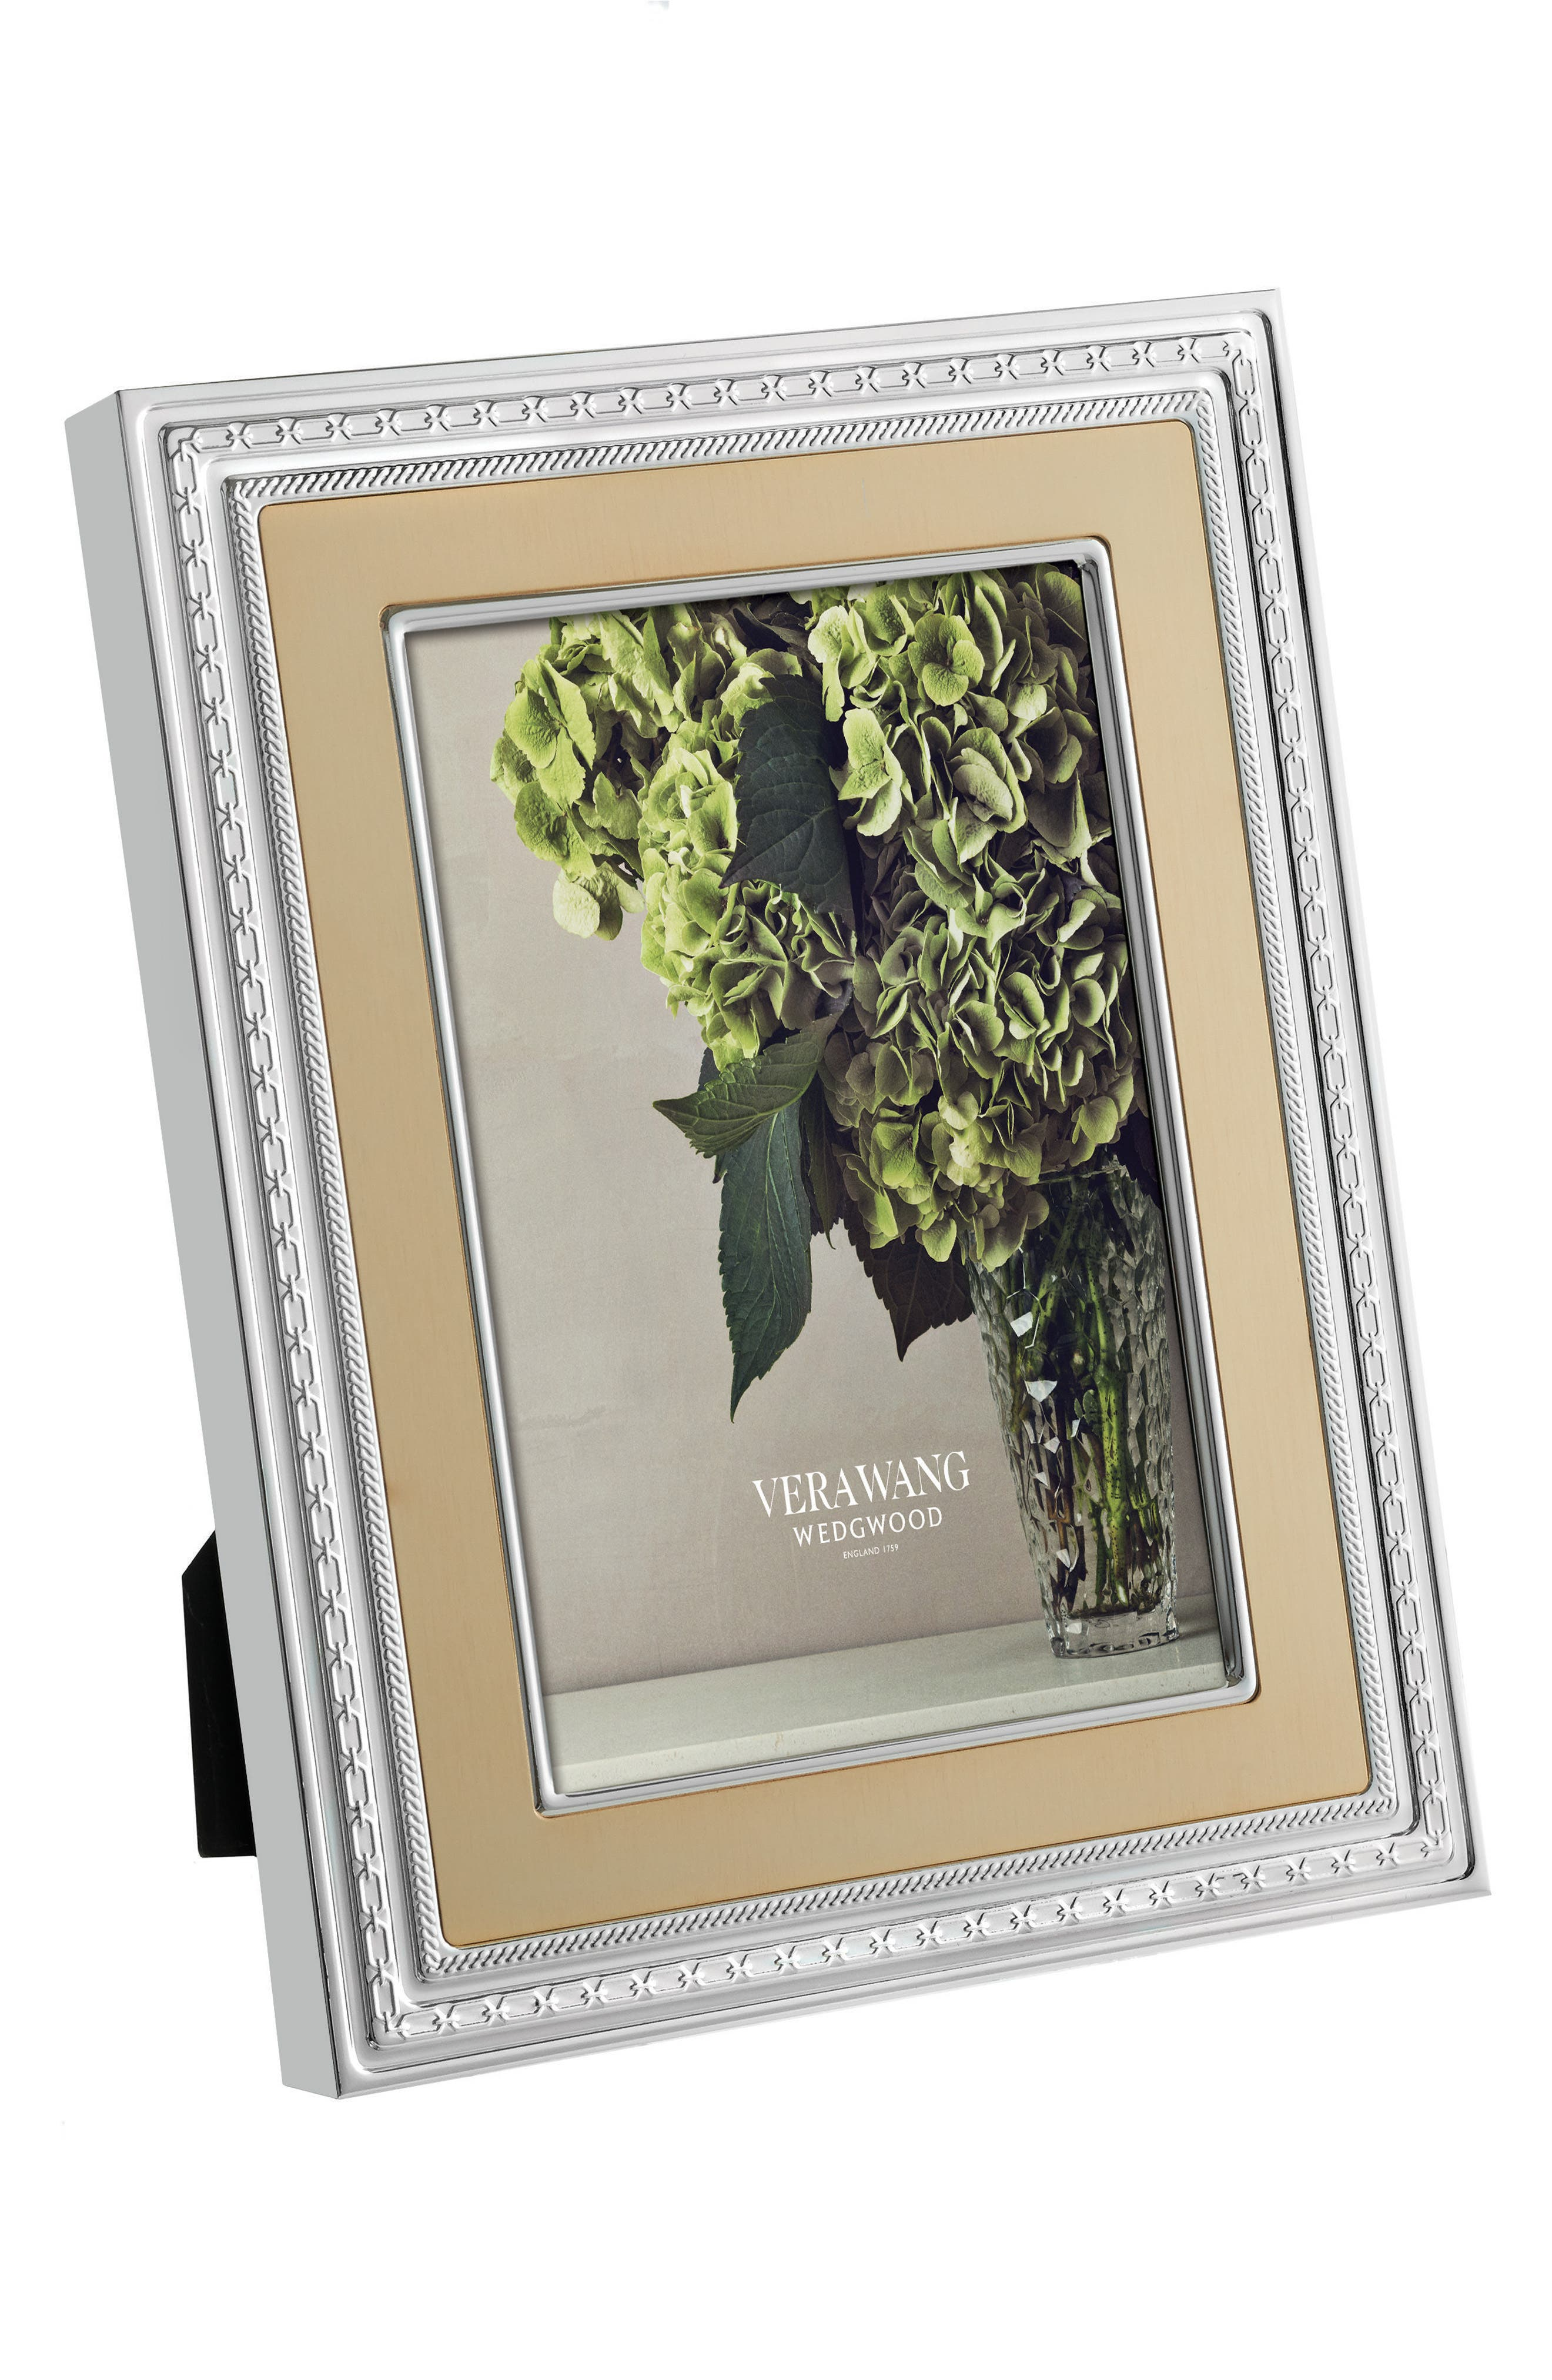 Alternate Image 1 Selected - Vera Wang x Wedgwood With Love Picture Frame